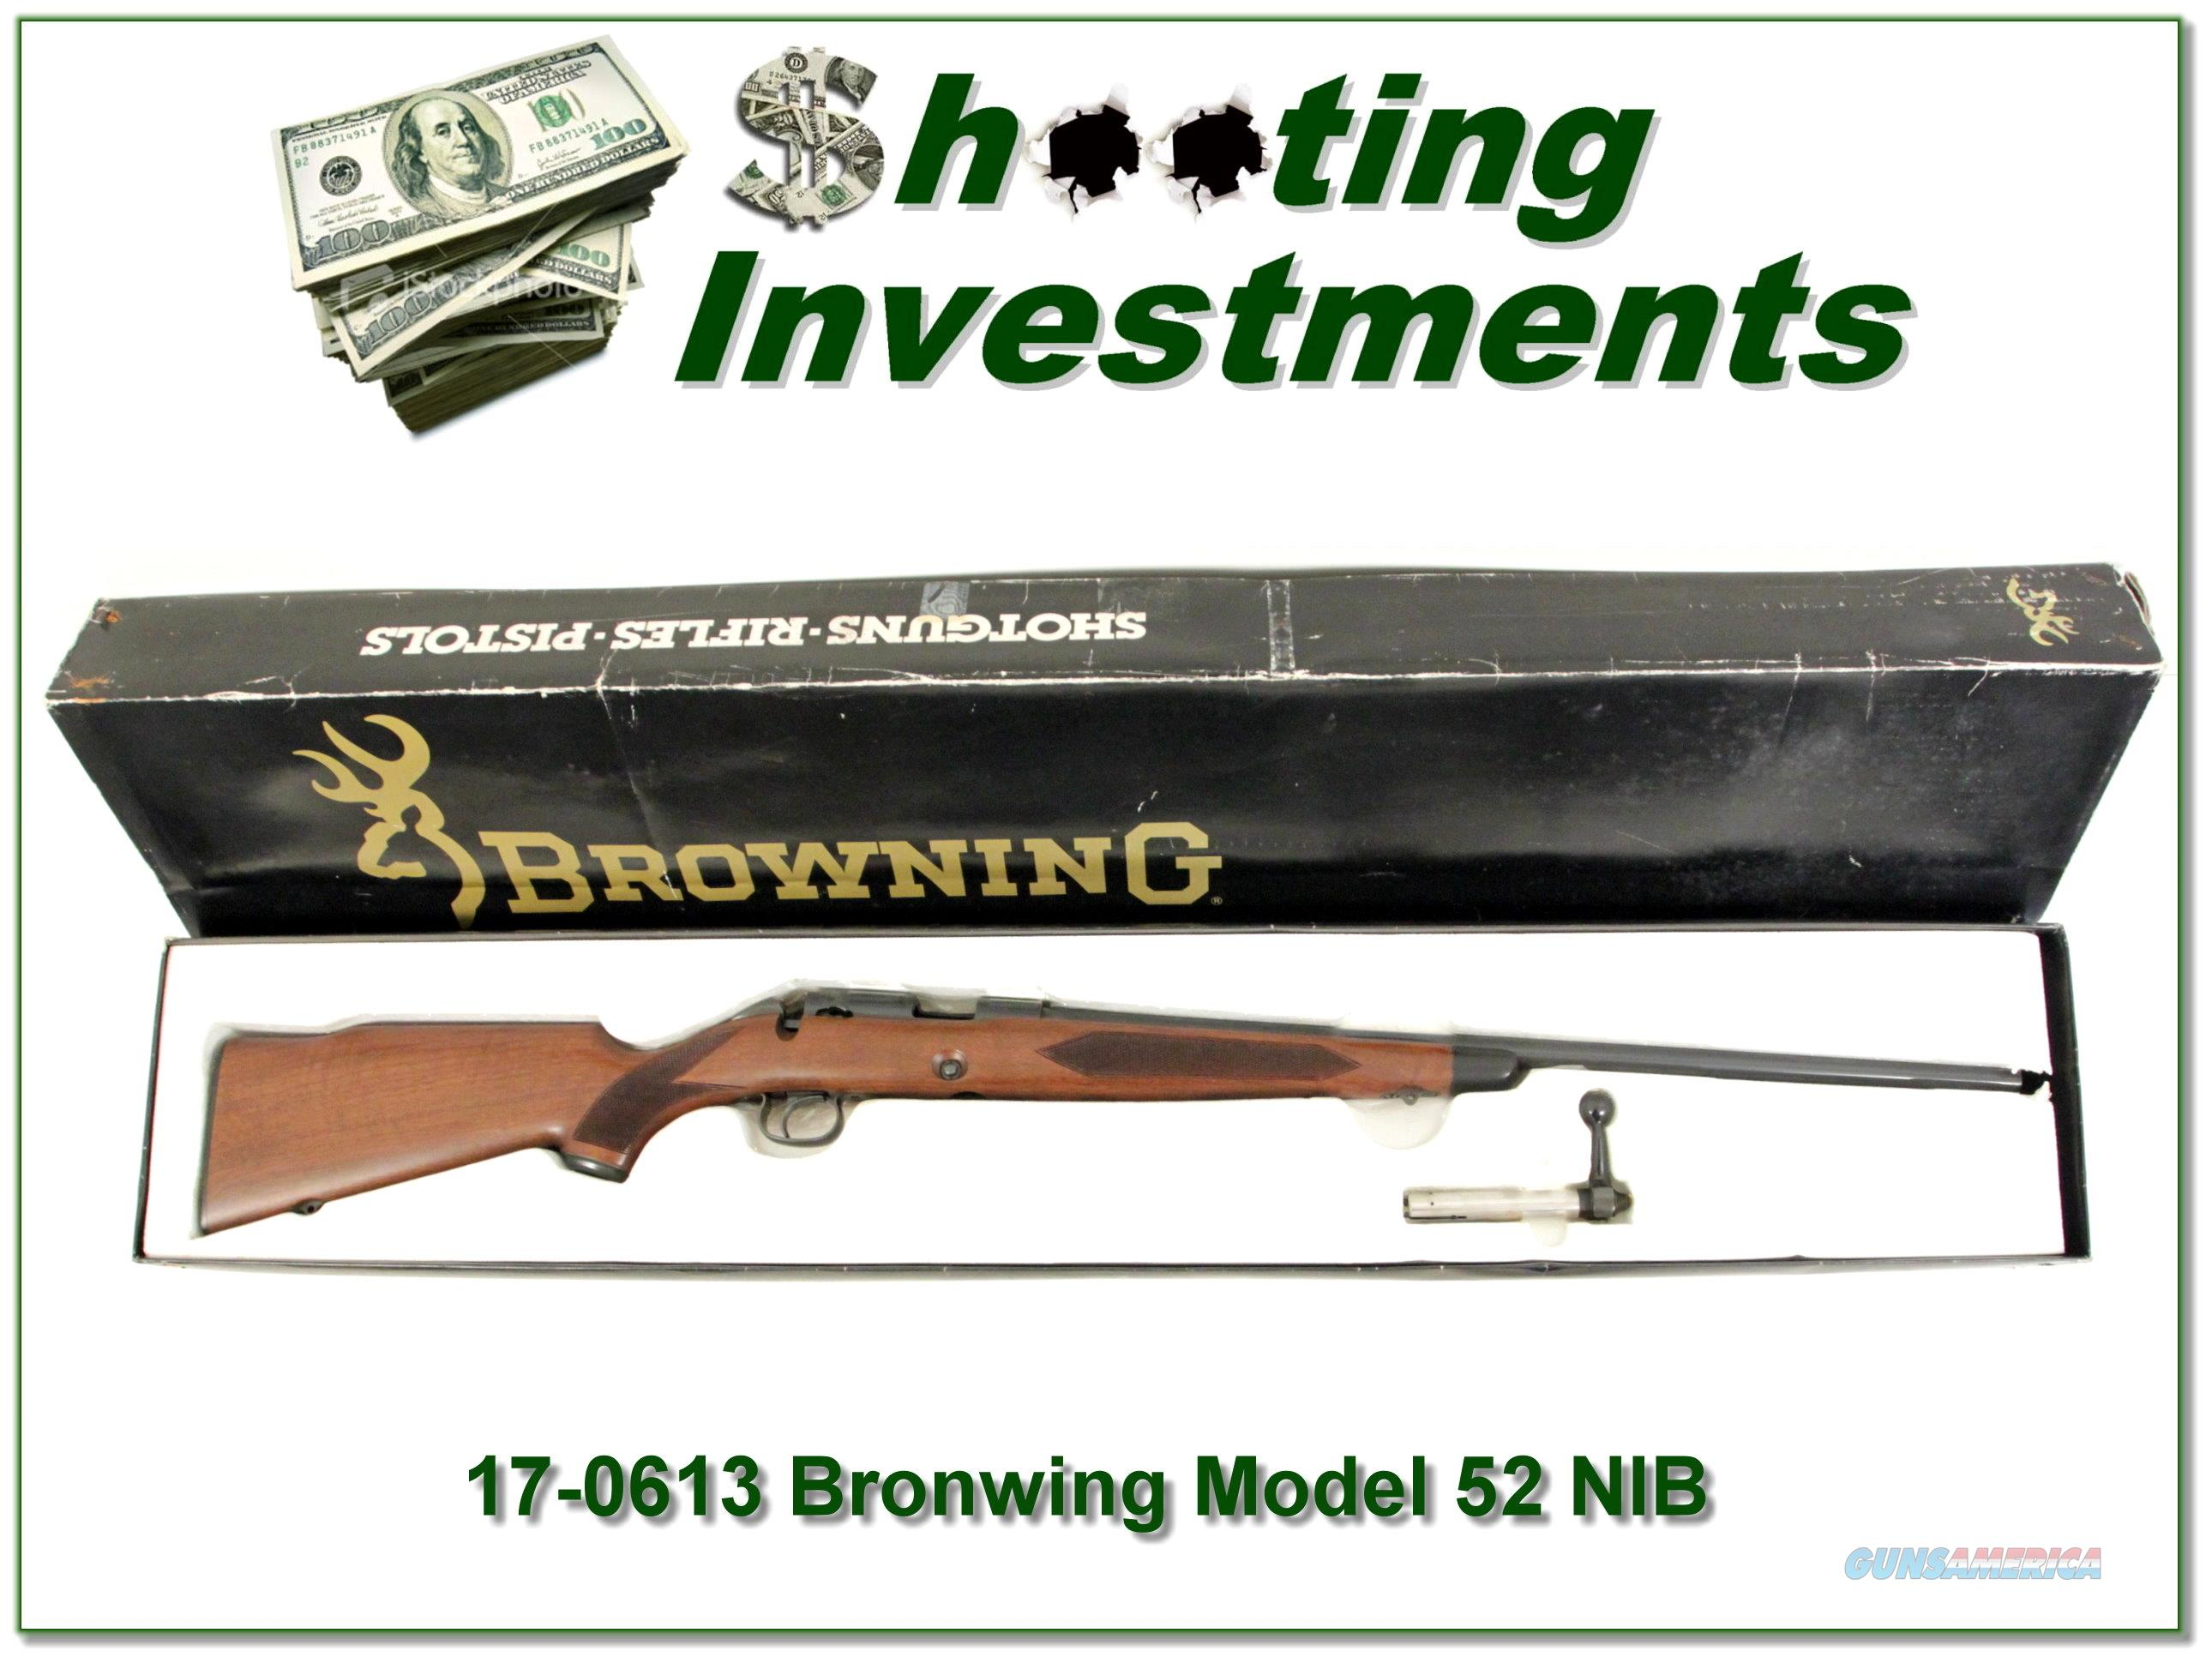 Browning Model 52 22 Rimfire in box!  Guns > Rifles > Browning Rifles > Bolt Action > Hunting > Blue